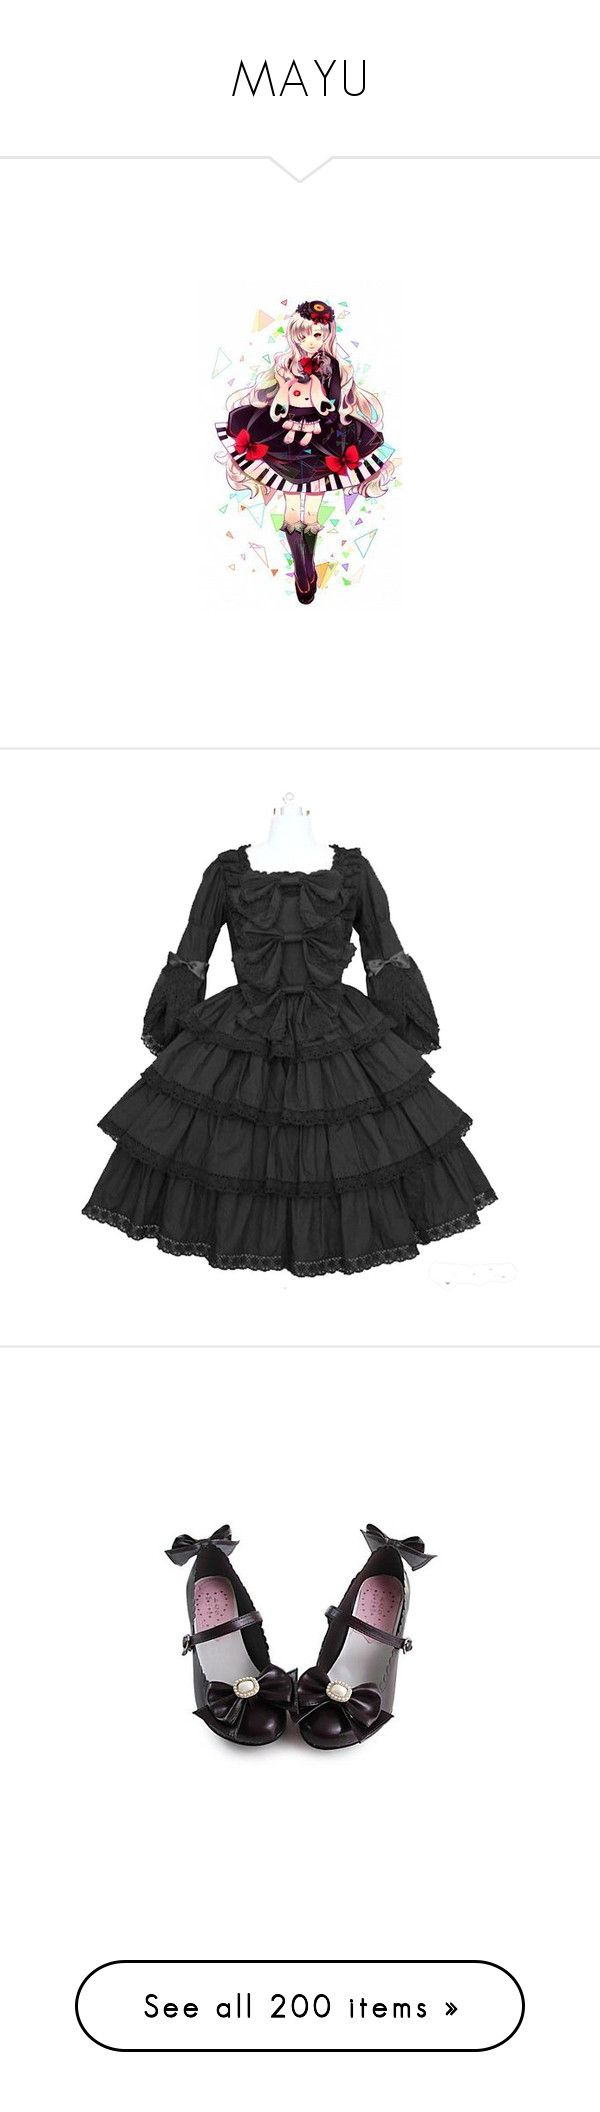 """""""MAYU"""" by adventuretimekitty ❤ liked on Polyvore featuring vocaloid, anime, costumes, dresses, goth, goth costume, french maid costume, gothic halloween costumes, sexy maid costume and french maid halloween costume"""